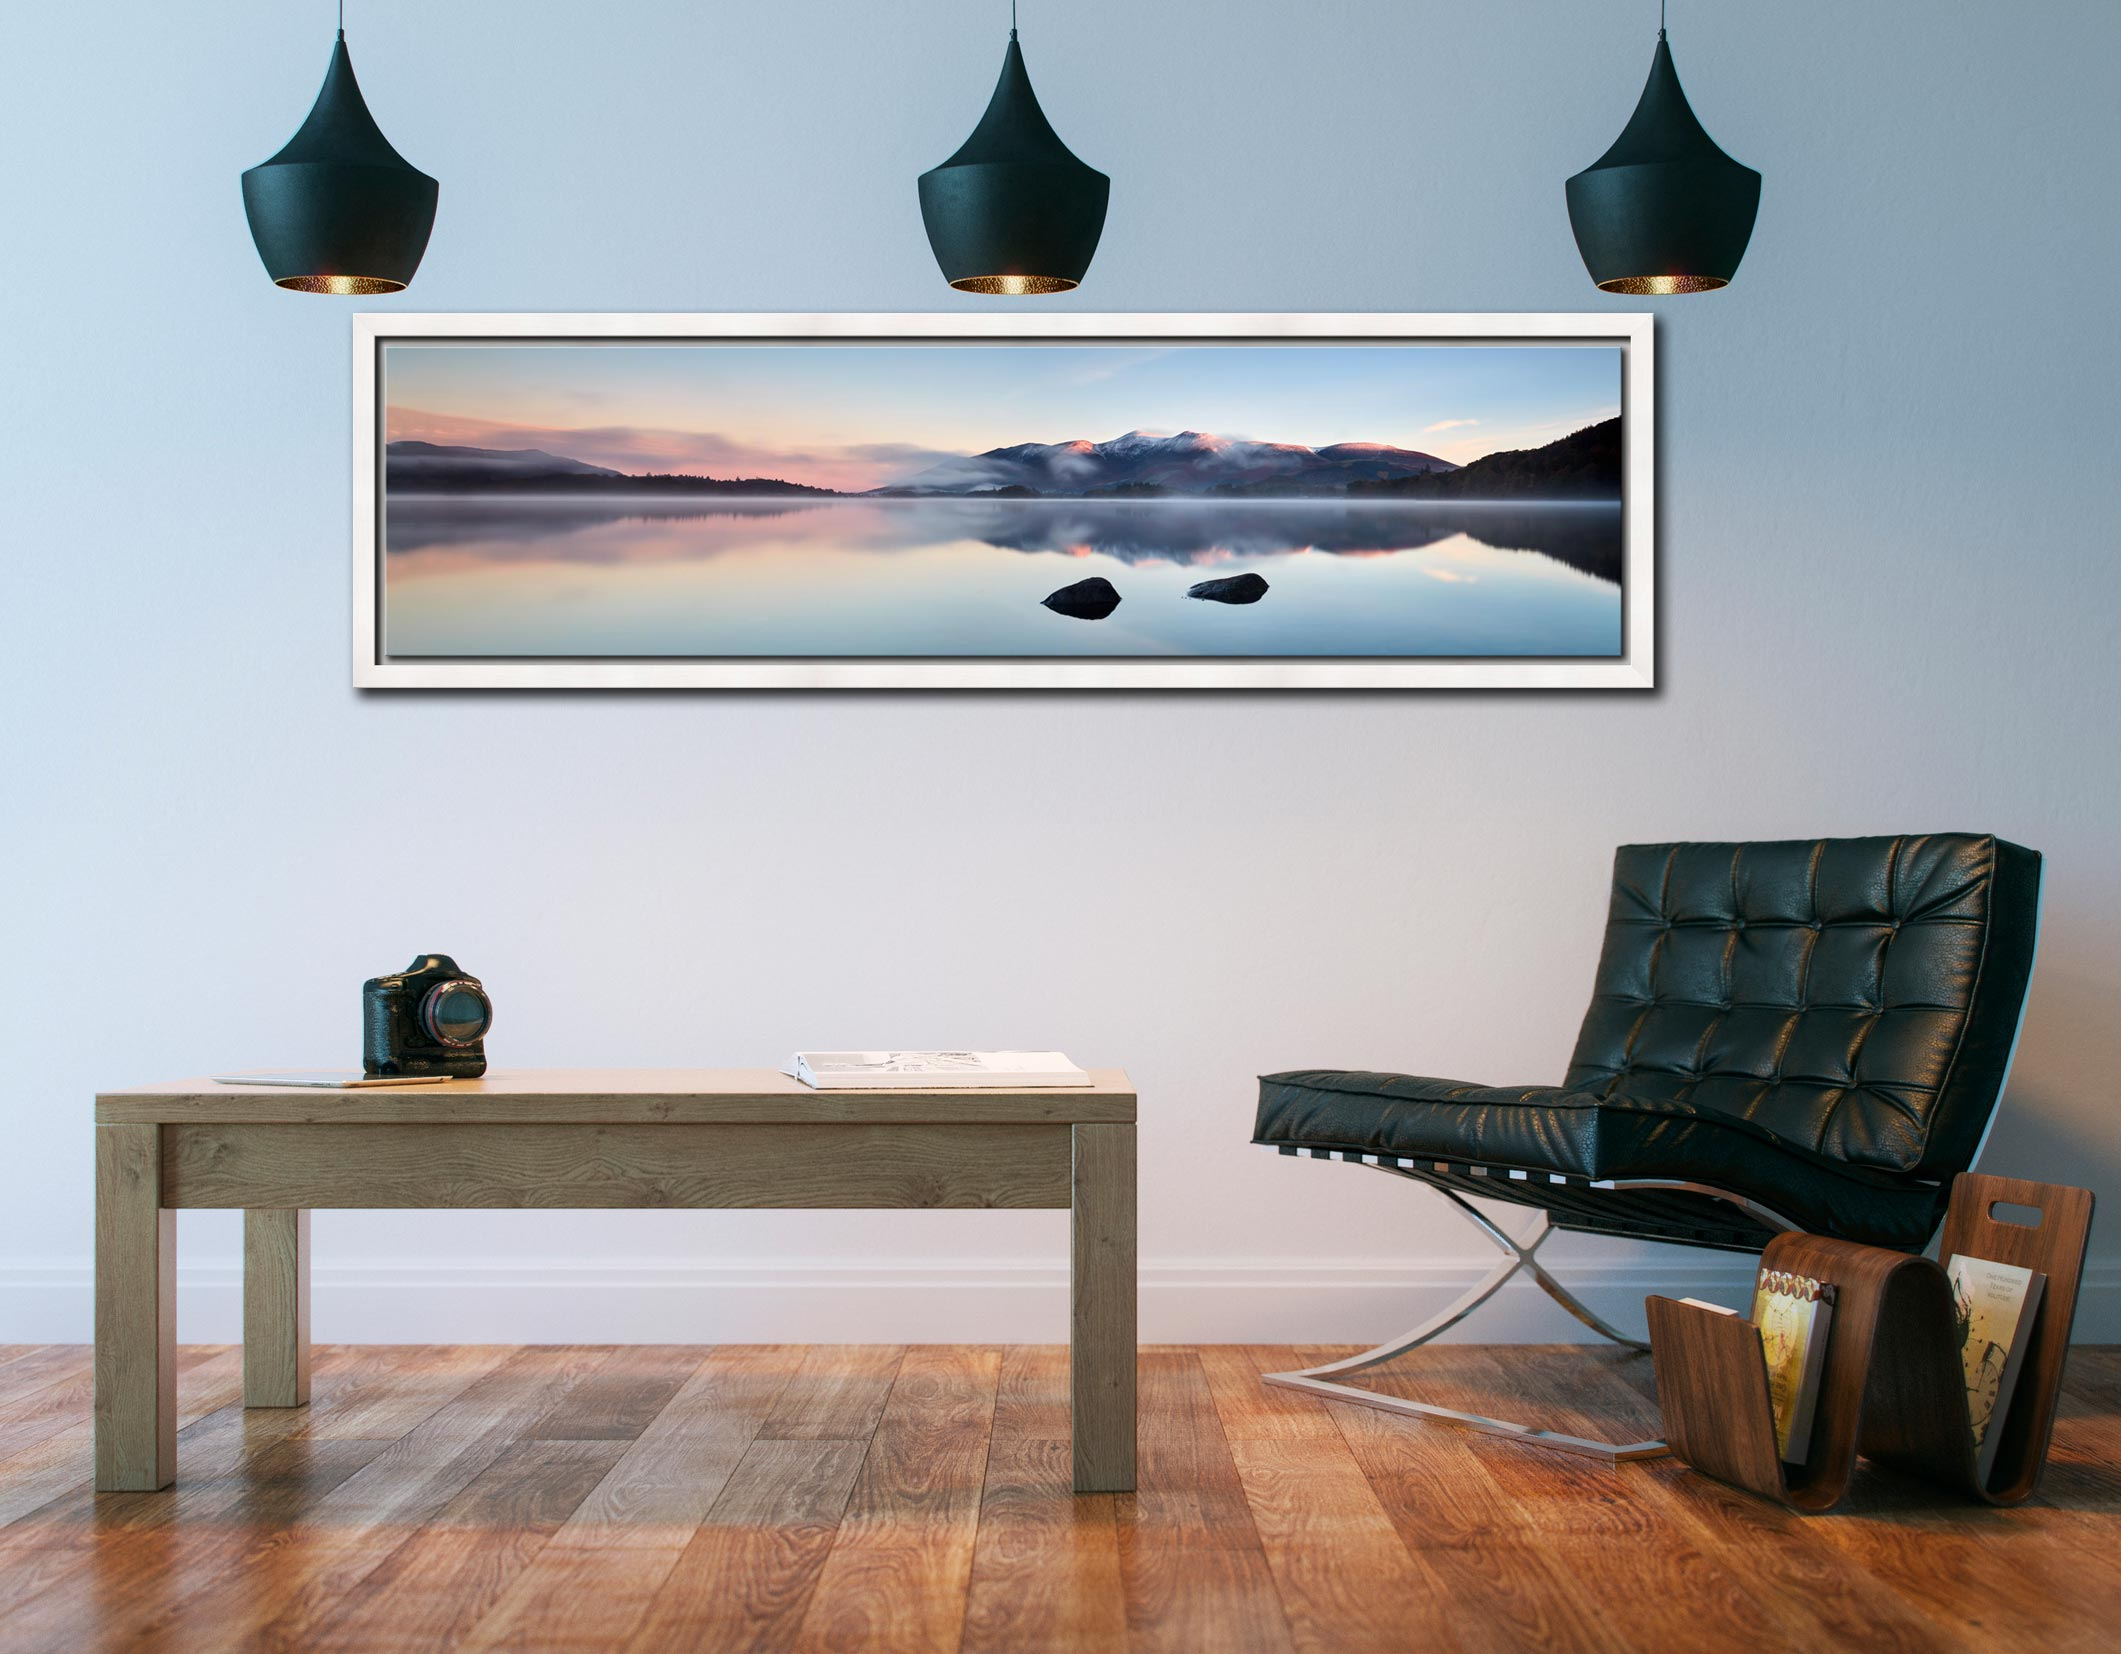 A New Day Dawns at Derwent Water - White Maple floater frame with acrylic glazing on Wall